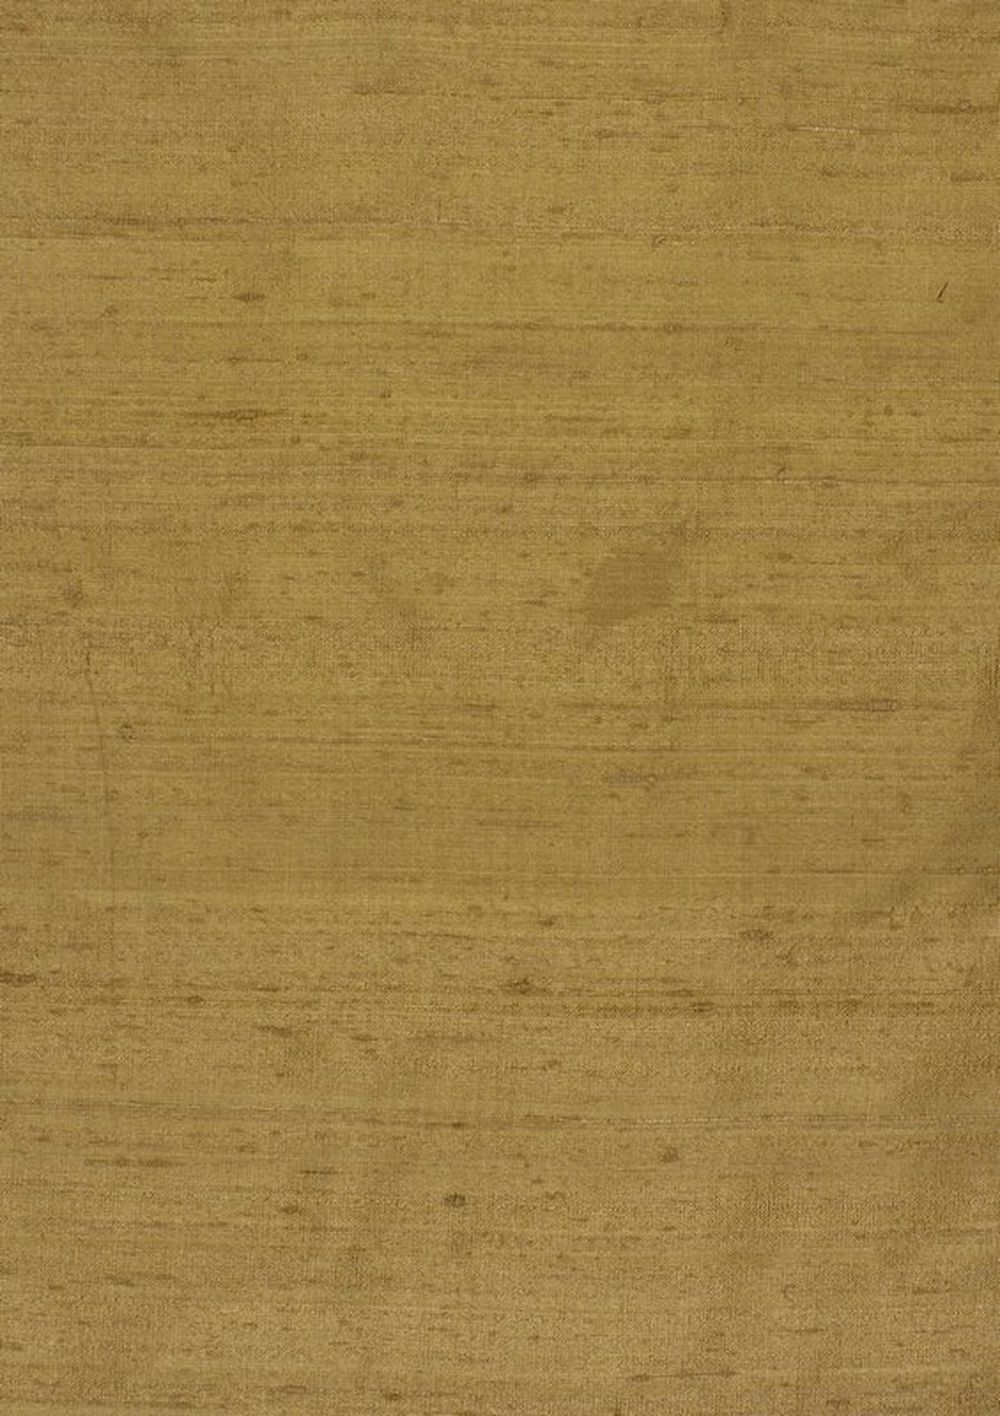 Photo of the fabric Luxury Doe-173 swatch by James Dunlop. Use for Drapery. Style of Plain